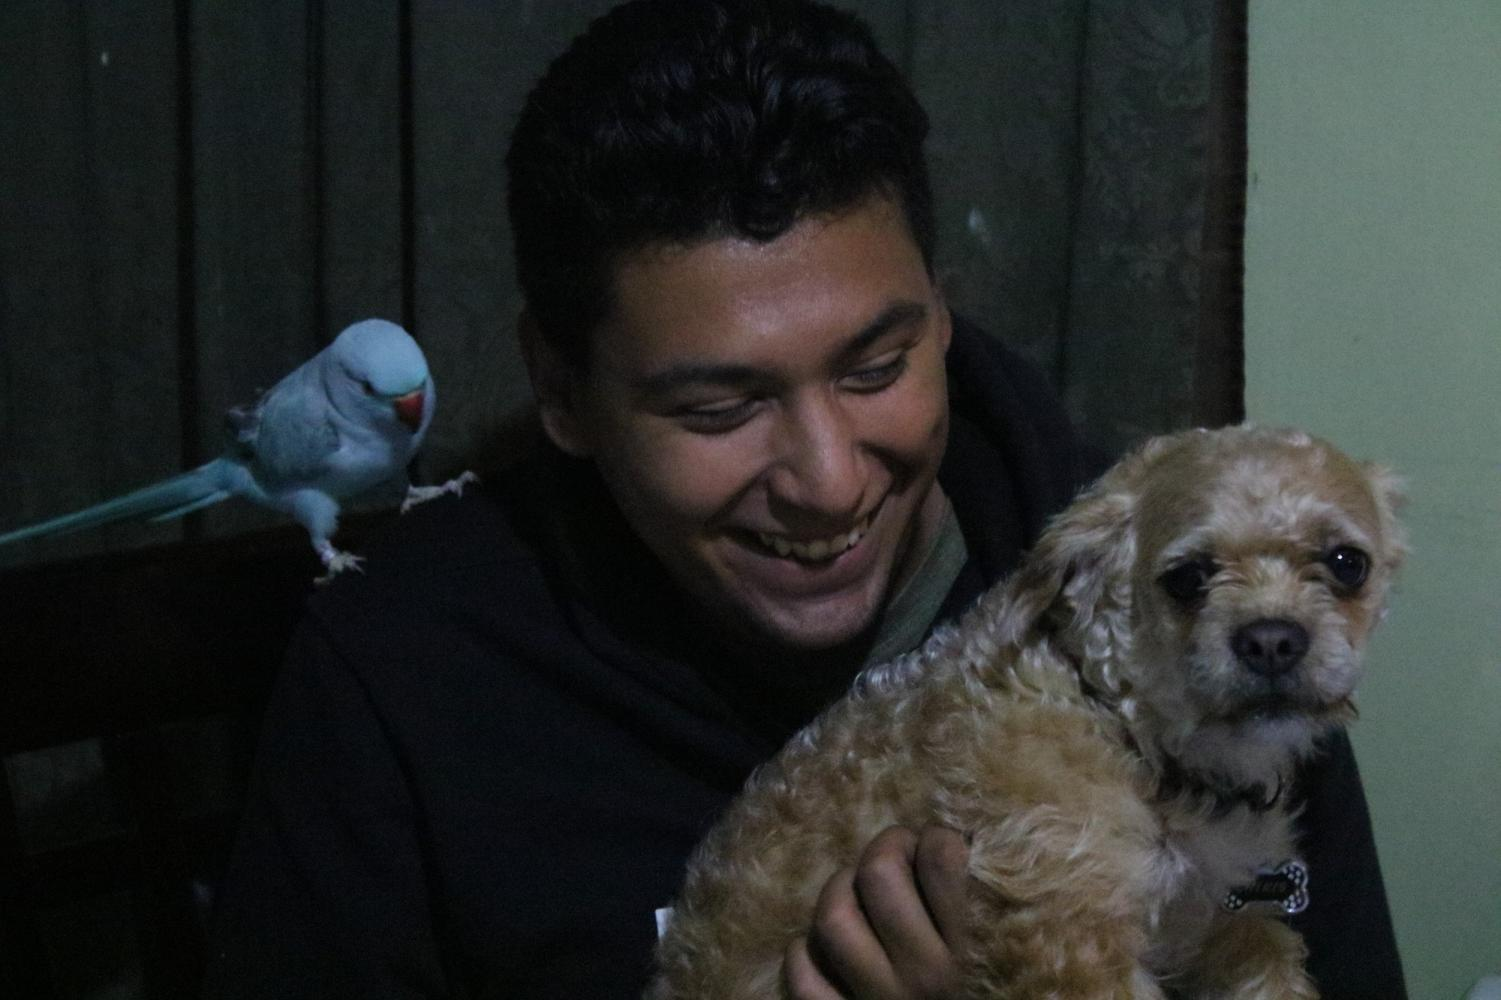 Carlos Paz, 21, sits with his Indian Ringneck parakeet Blu and dog Chikis after a long day at El Camino College and working as a mechanic on Monday, May 6. Paz said he owes his success to his father who encourages him to pursue his outmost goals in life. Photo credit: Rosemary Montalvo